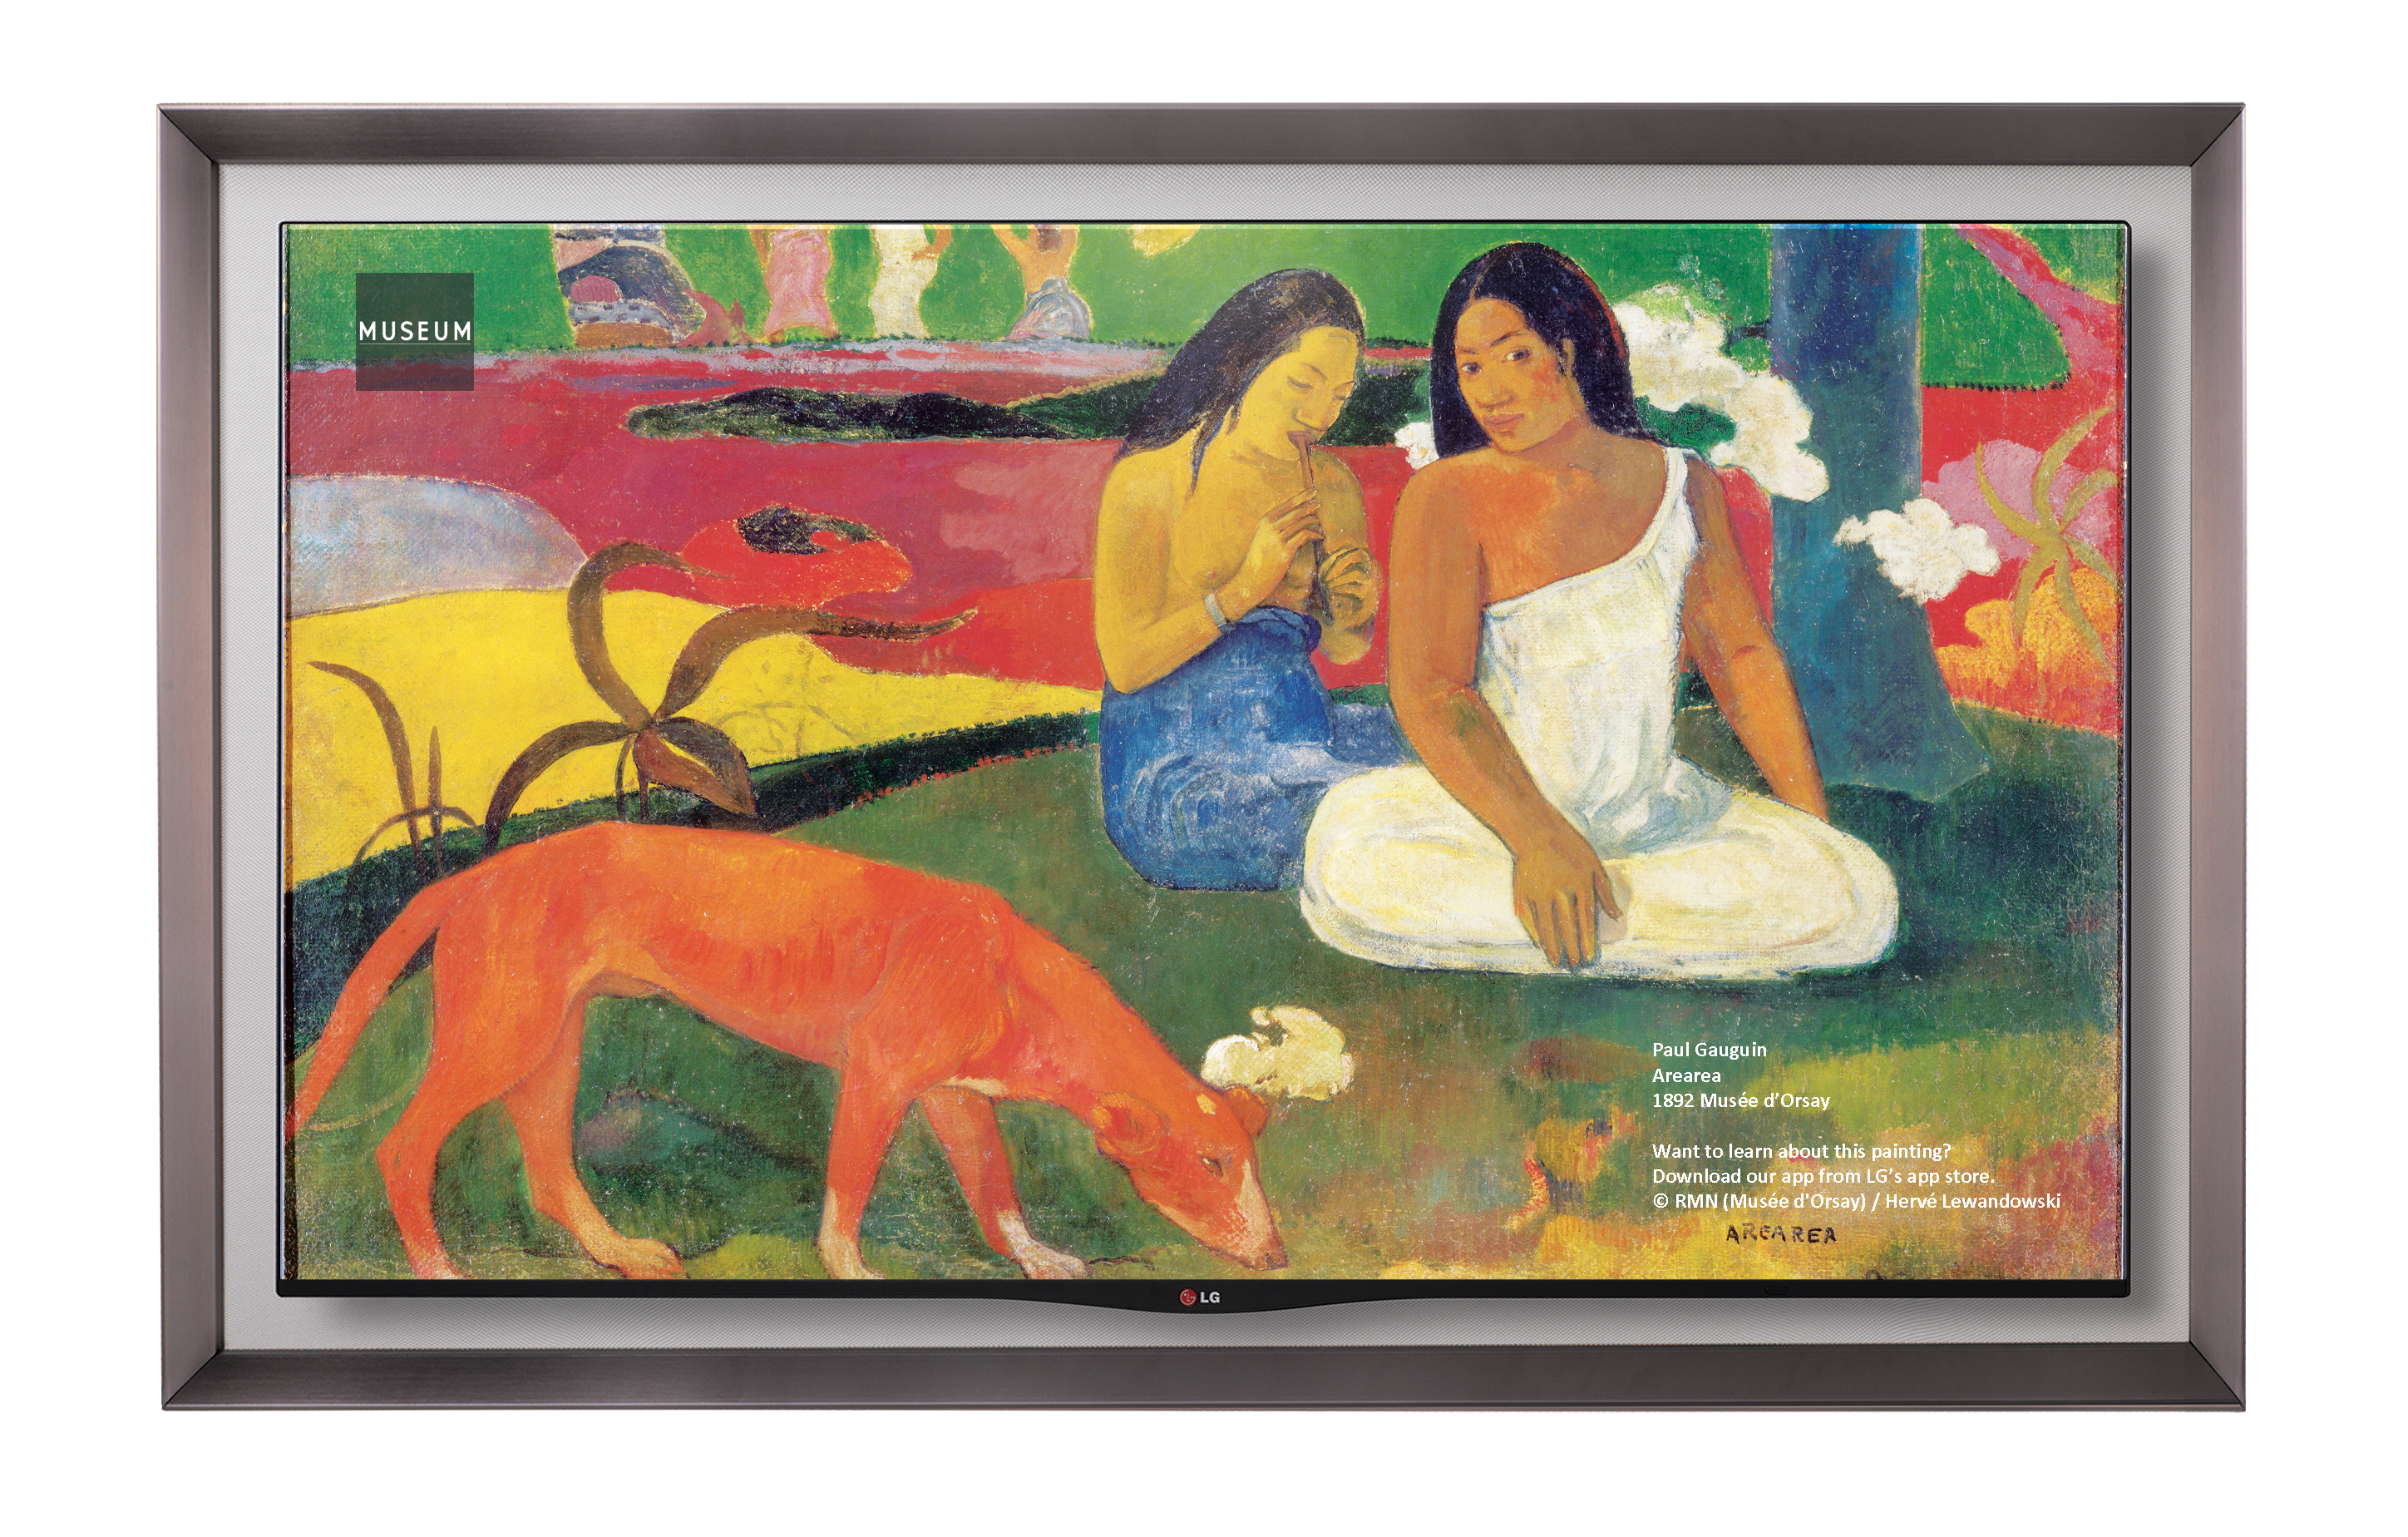 LG GALLERY OLED TV model 55EA8800 displaying one of Paul Gauguin's artwork